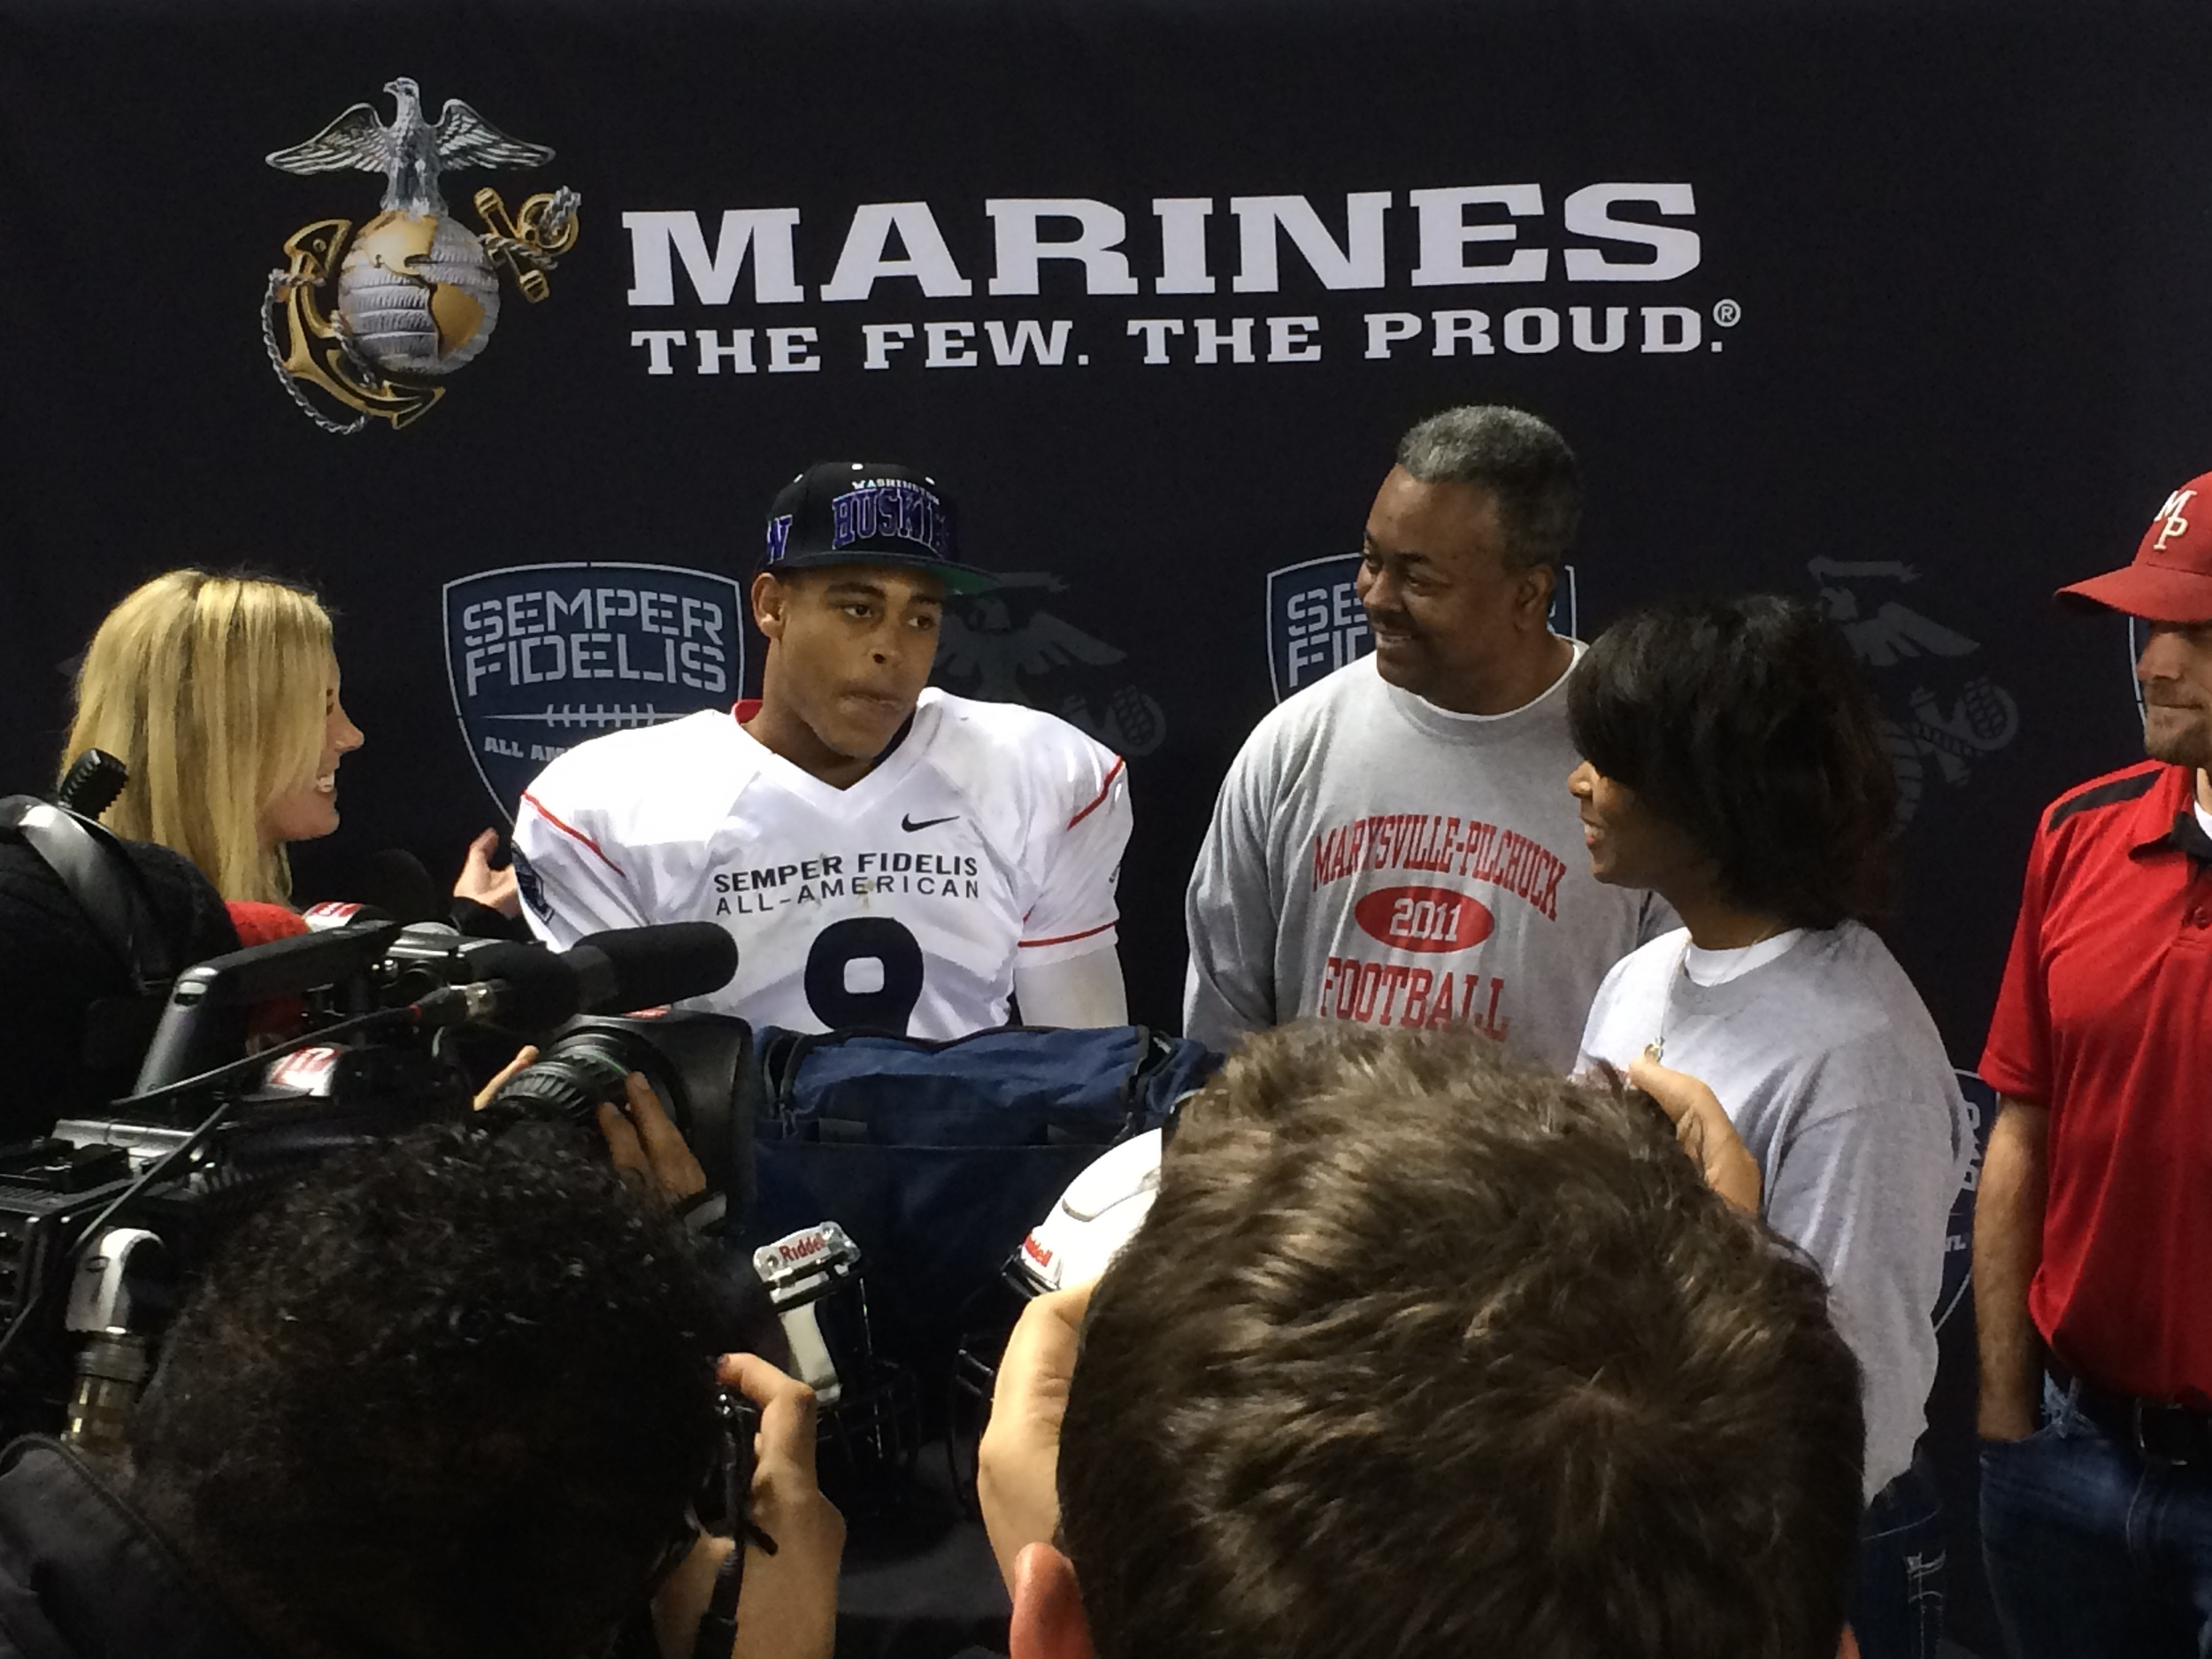 Star cornerback Austin Joyner committed to the University of Washington live on Fox Sports 1 during the Semper Fi Bowl.